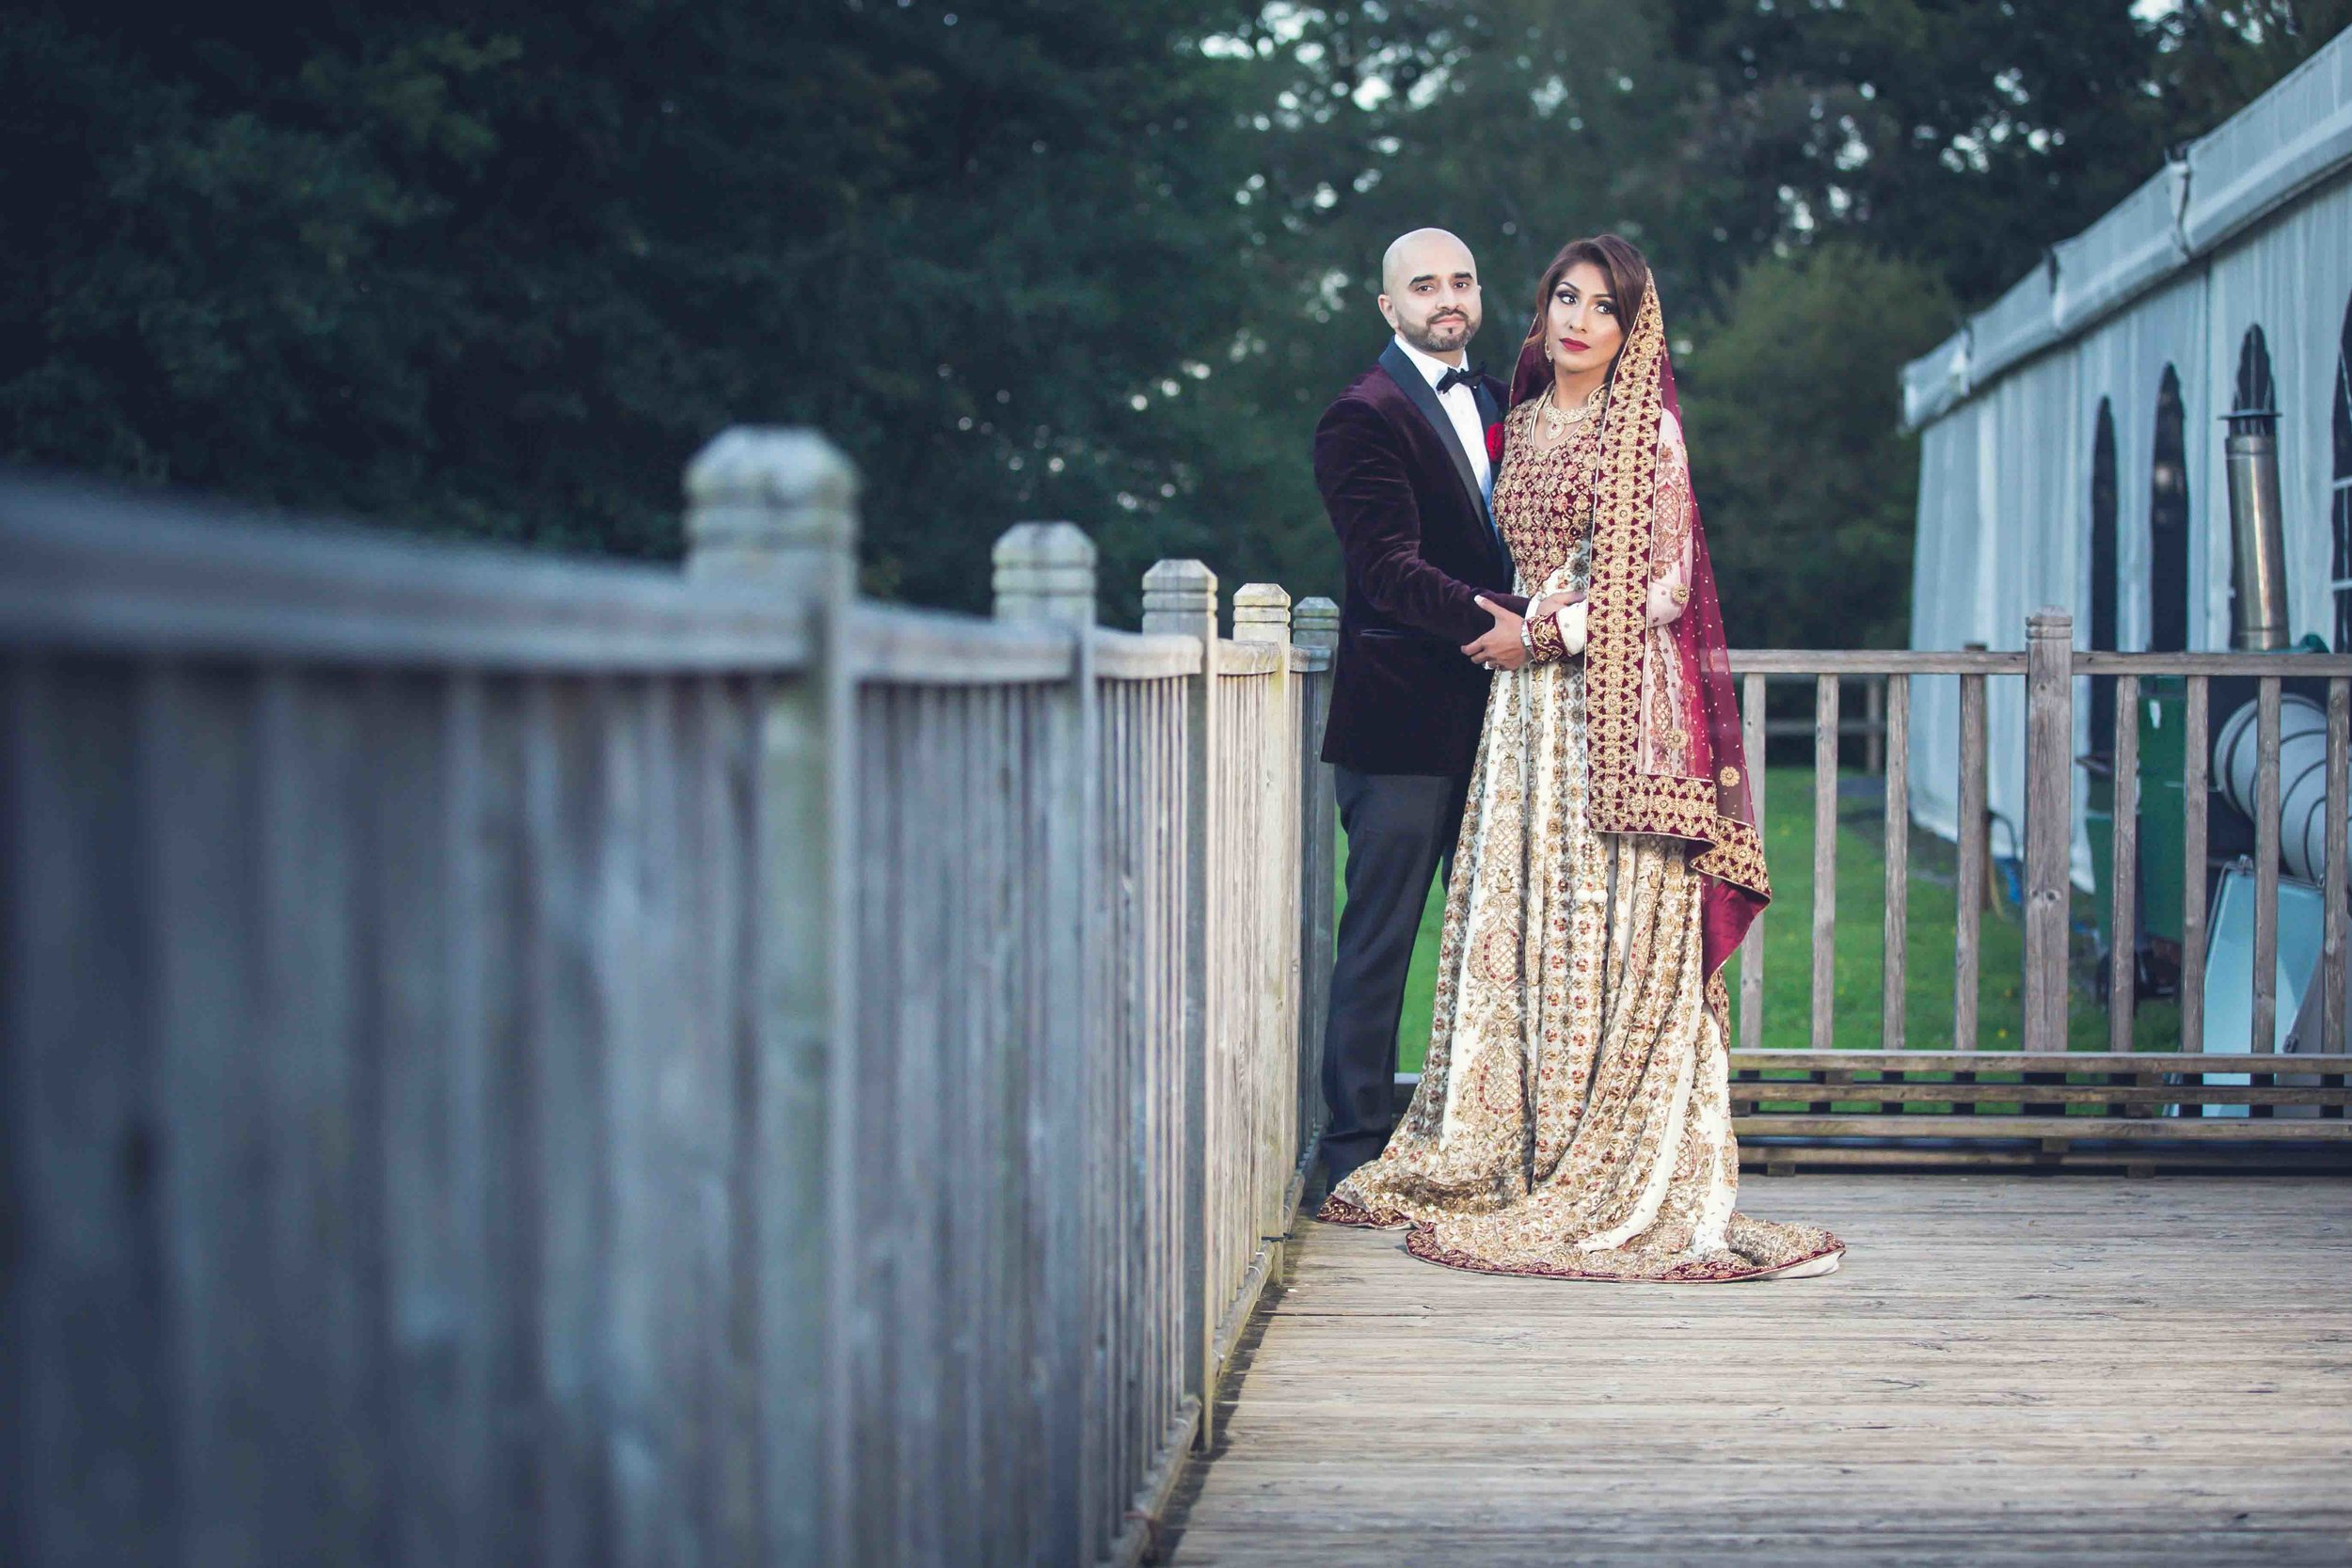 Asian Wedding Photographer Opu Sultan Photography Lyme Park Scotland Edinburgh Glasgow London Manchester Liverpool Birmingham Wedding Photos prewed shoot Azman & Saira Blog-121.jpg